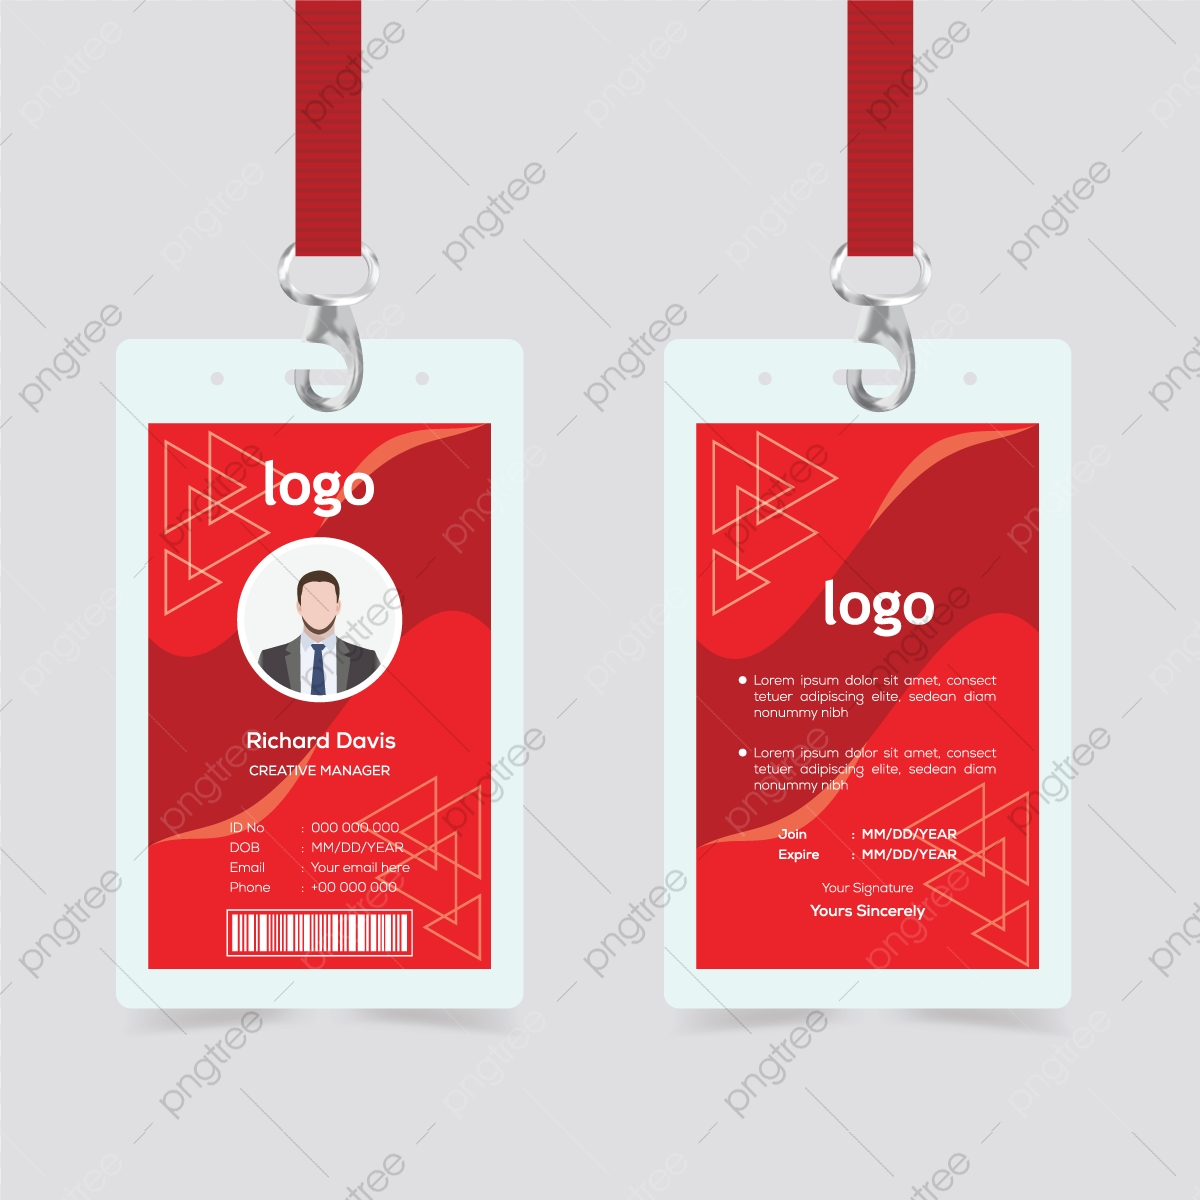 Creative Id Card Template With Abstract Red Background Template With Regard To Conference Id Card Template